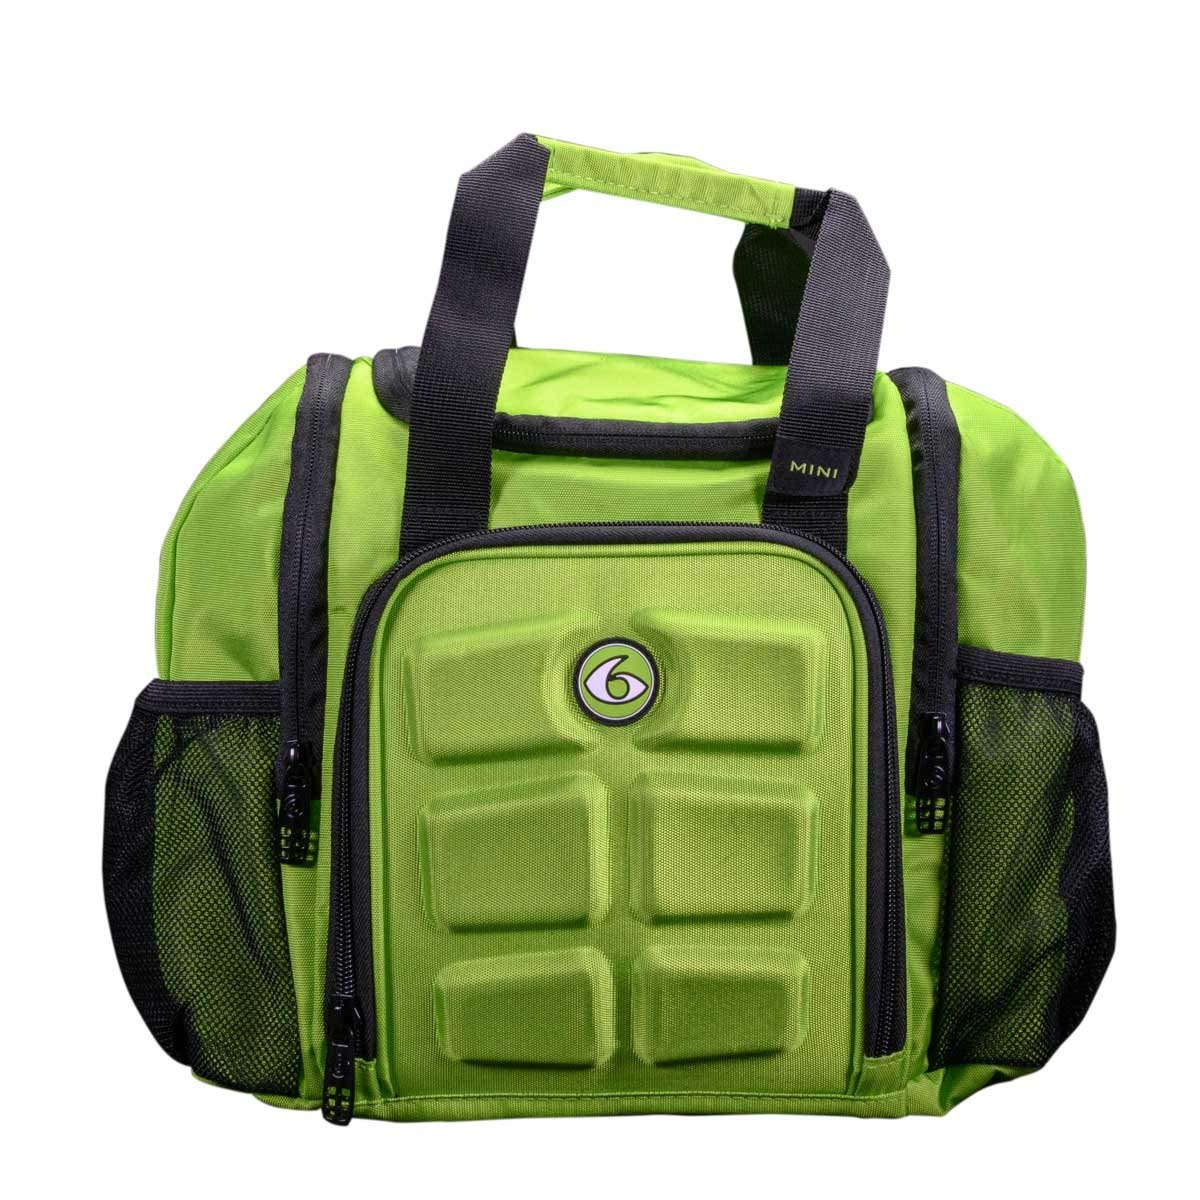 6 Pack Fitness Innovator Mini Lime by 6 Pack Fitness